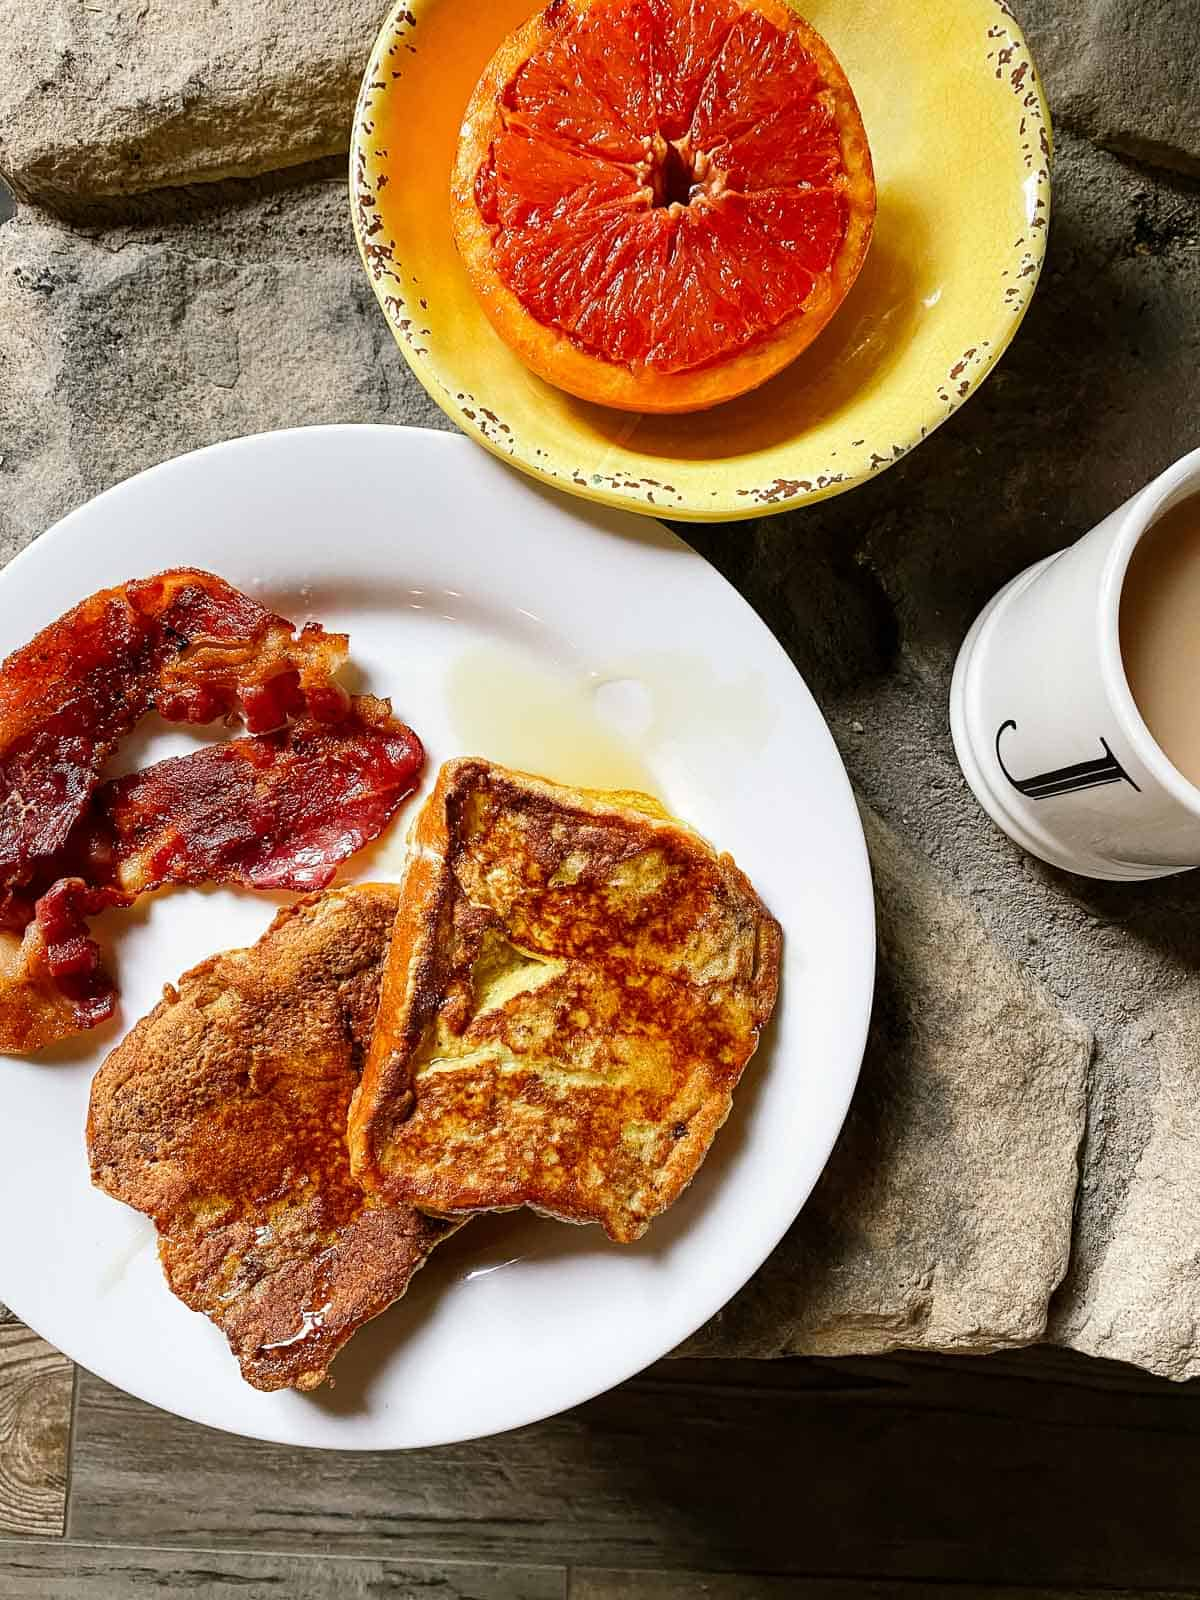 plate of french toast with syrup and bacon and bowl with grapefruit and mug of tea